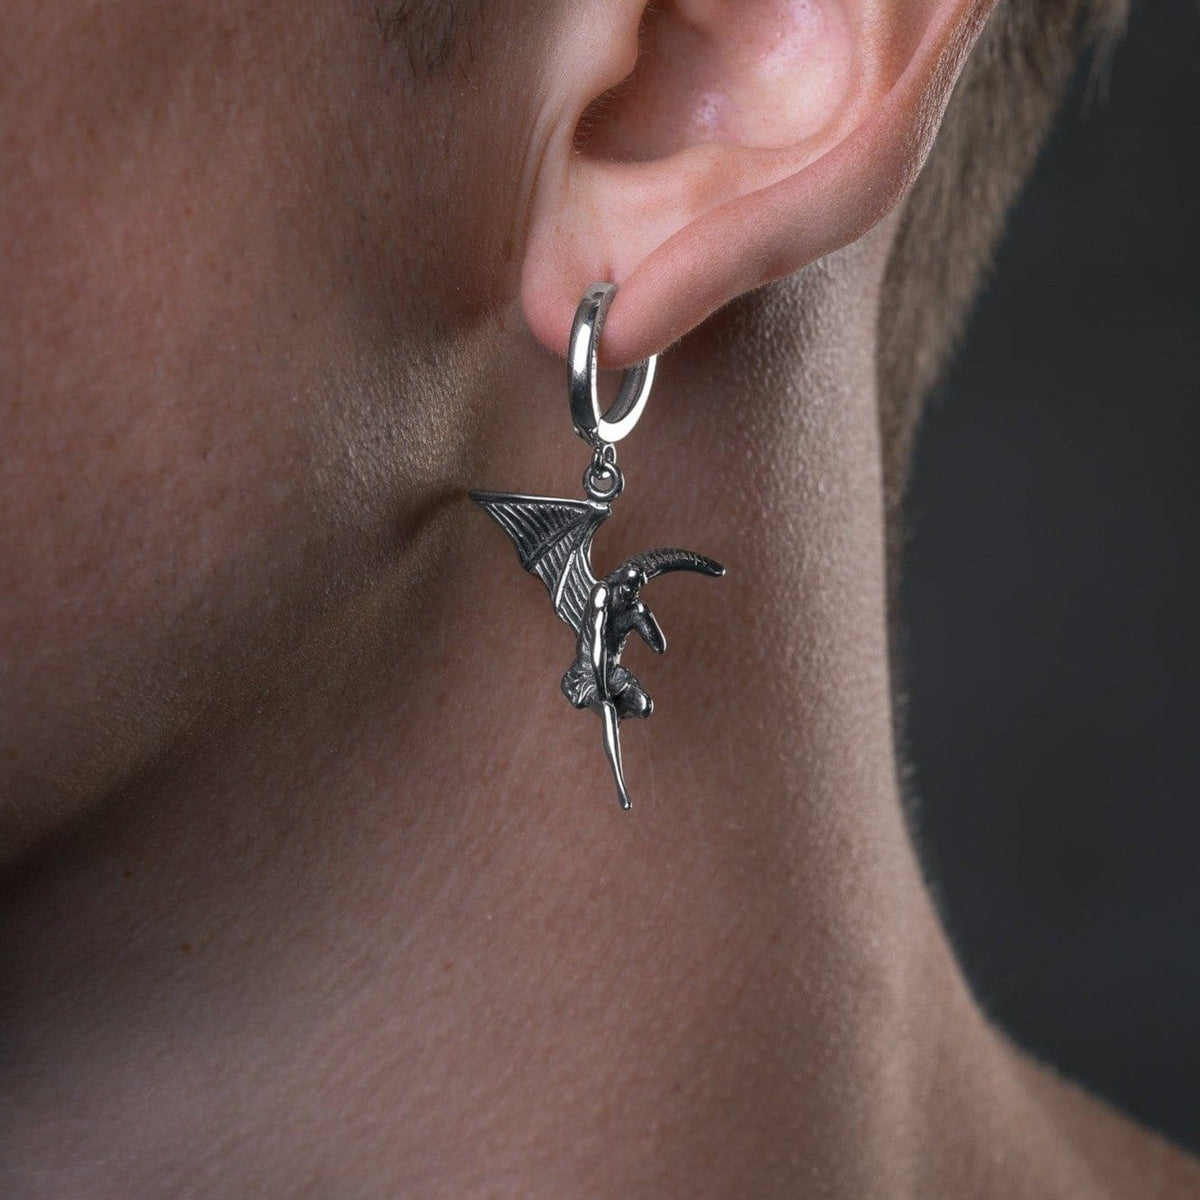 Fallen Angel Mens Earring by Statement Collective_03